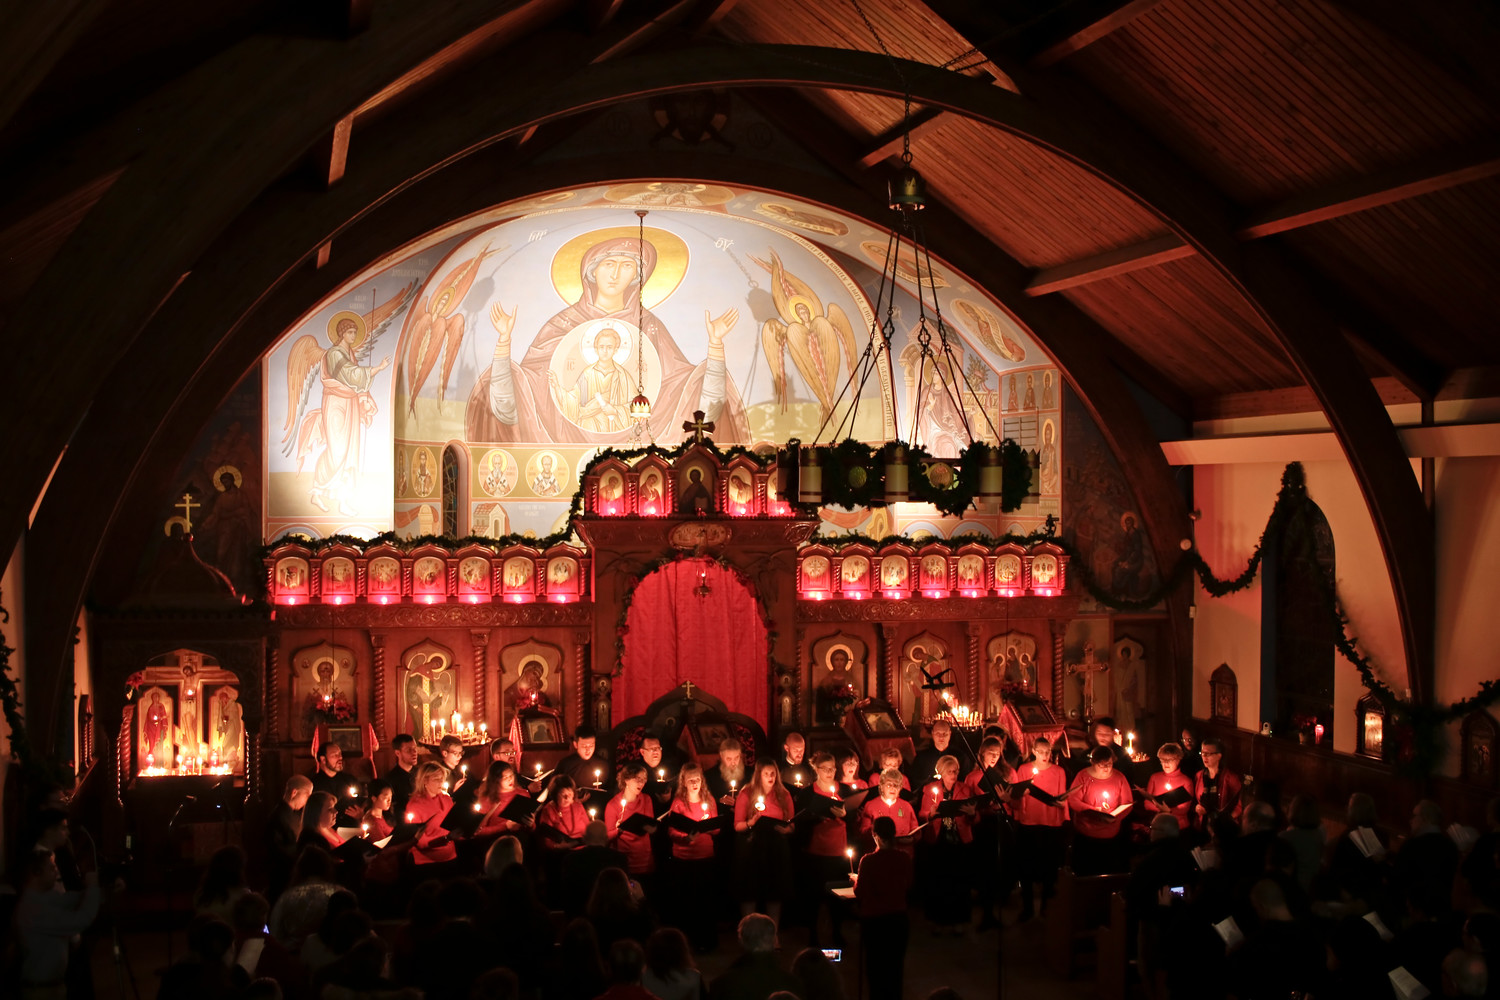 Candles were lit and the audience stood for a beautiful performance of Silent Night by the Holy Trinity Parish Choirs and the Saint Vladimir's Seminary Chorale.